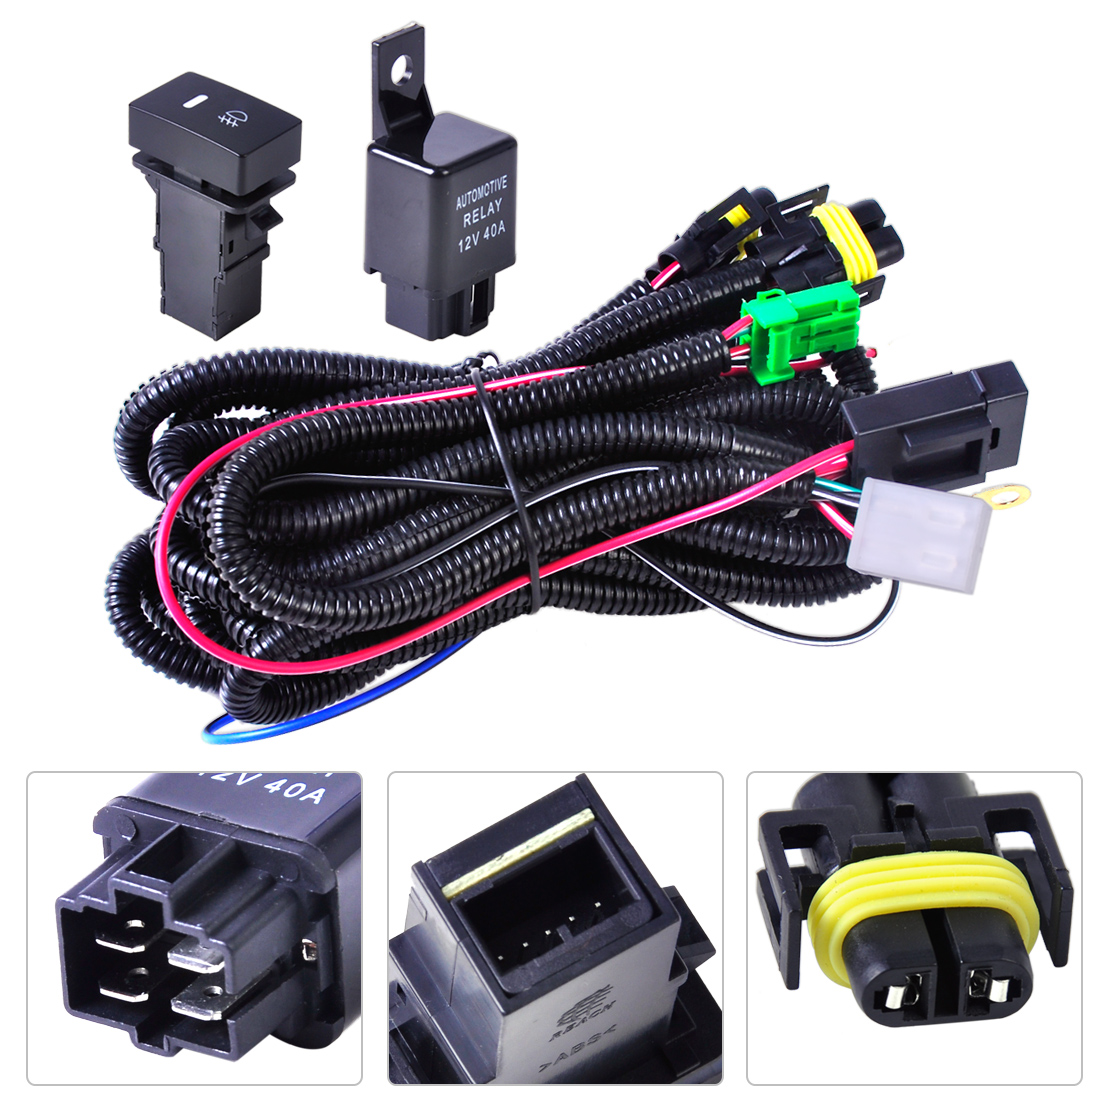 1 wiring harness sockets switch for h11 fog light lamp ford focus 2003 mustang fog light wiring harness at gsmx.co